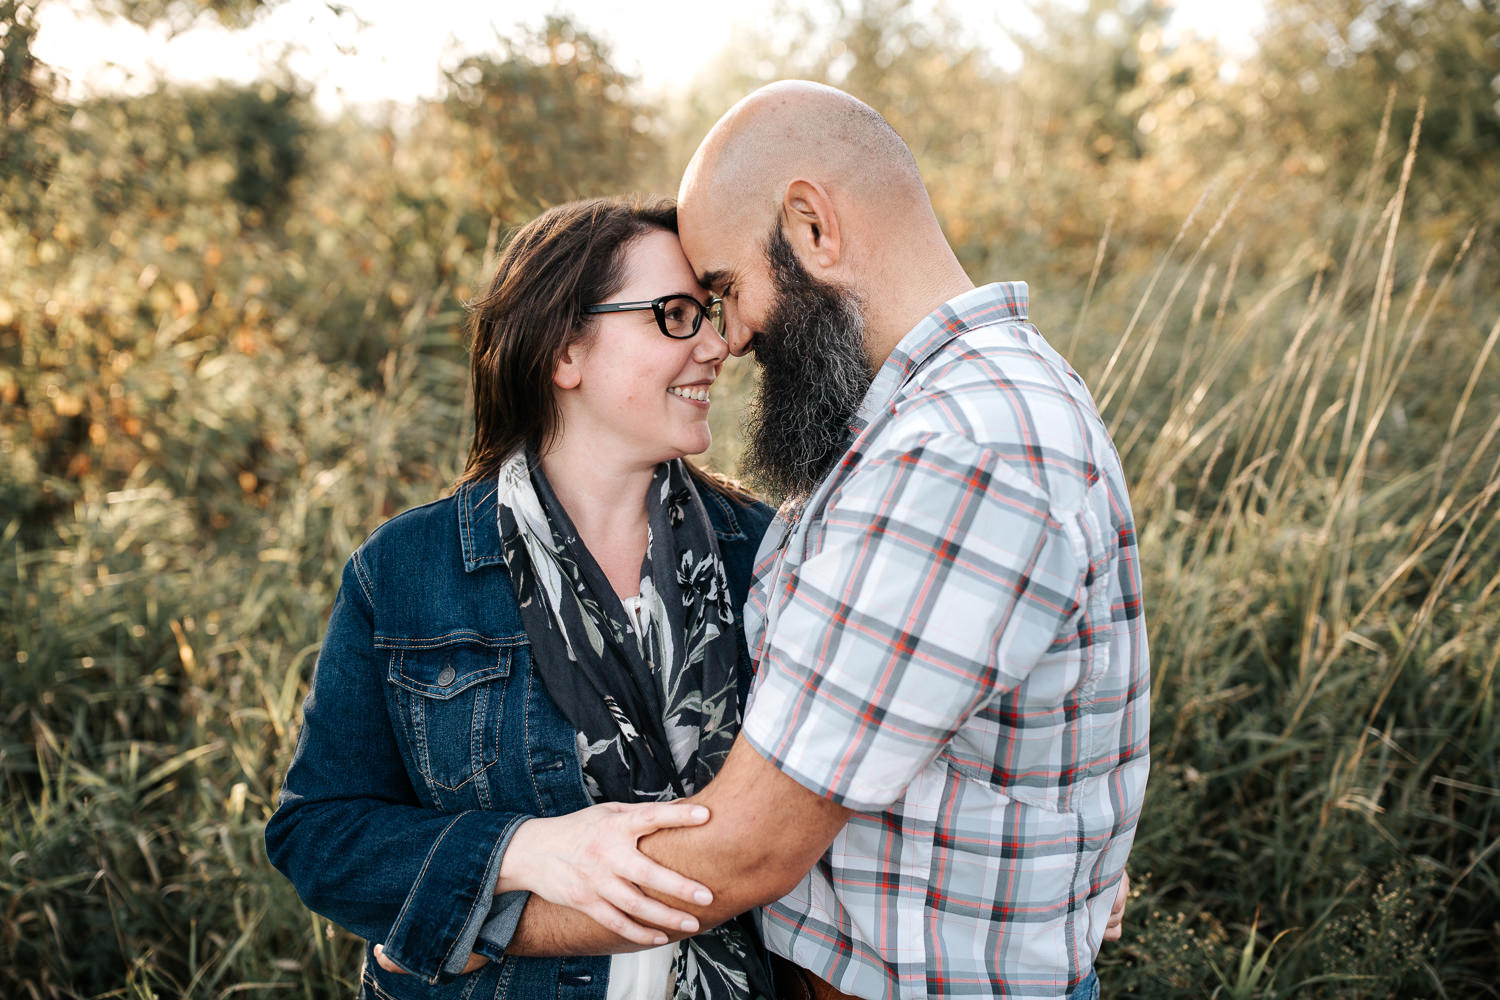 couple standing in grassy field at sunset, husband's arms around wife's waist, her hand on his arm, foreheads touching - Markham Lifestyle Photos